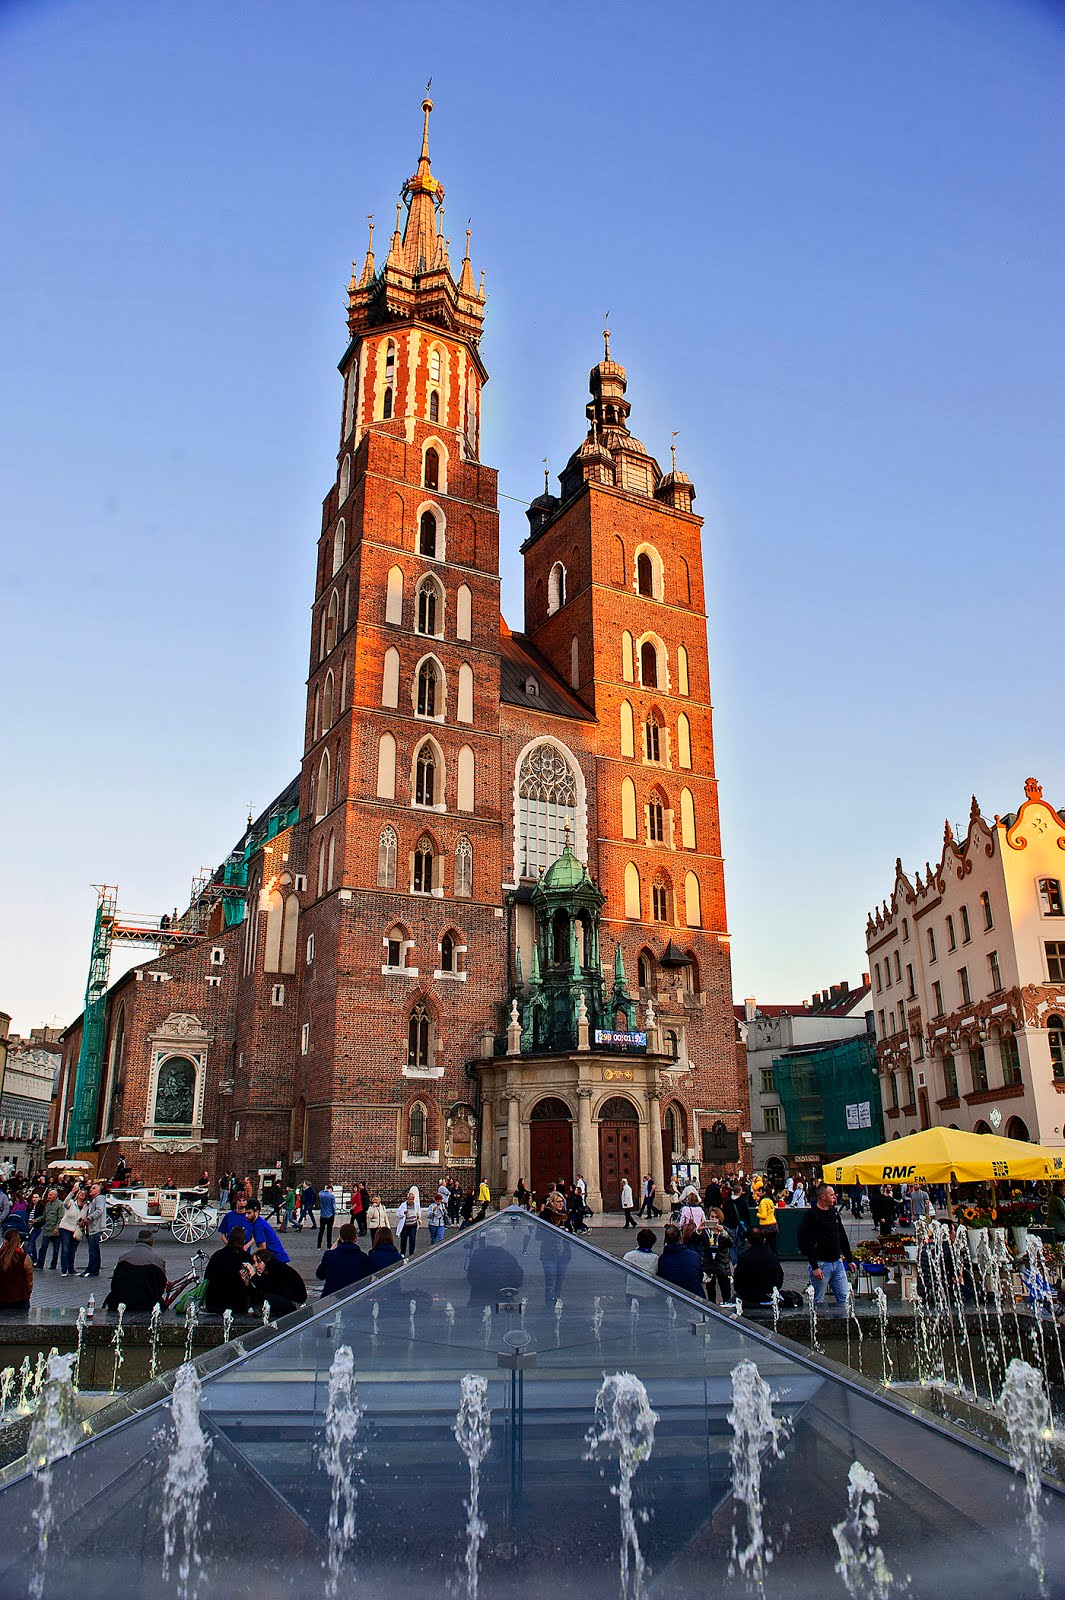 Krakow Poland Old Town Square St. Mary's Basilica